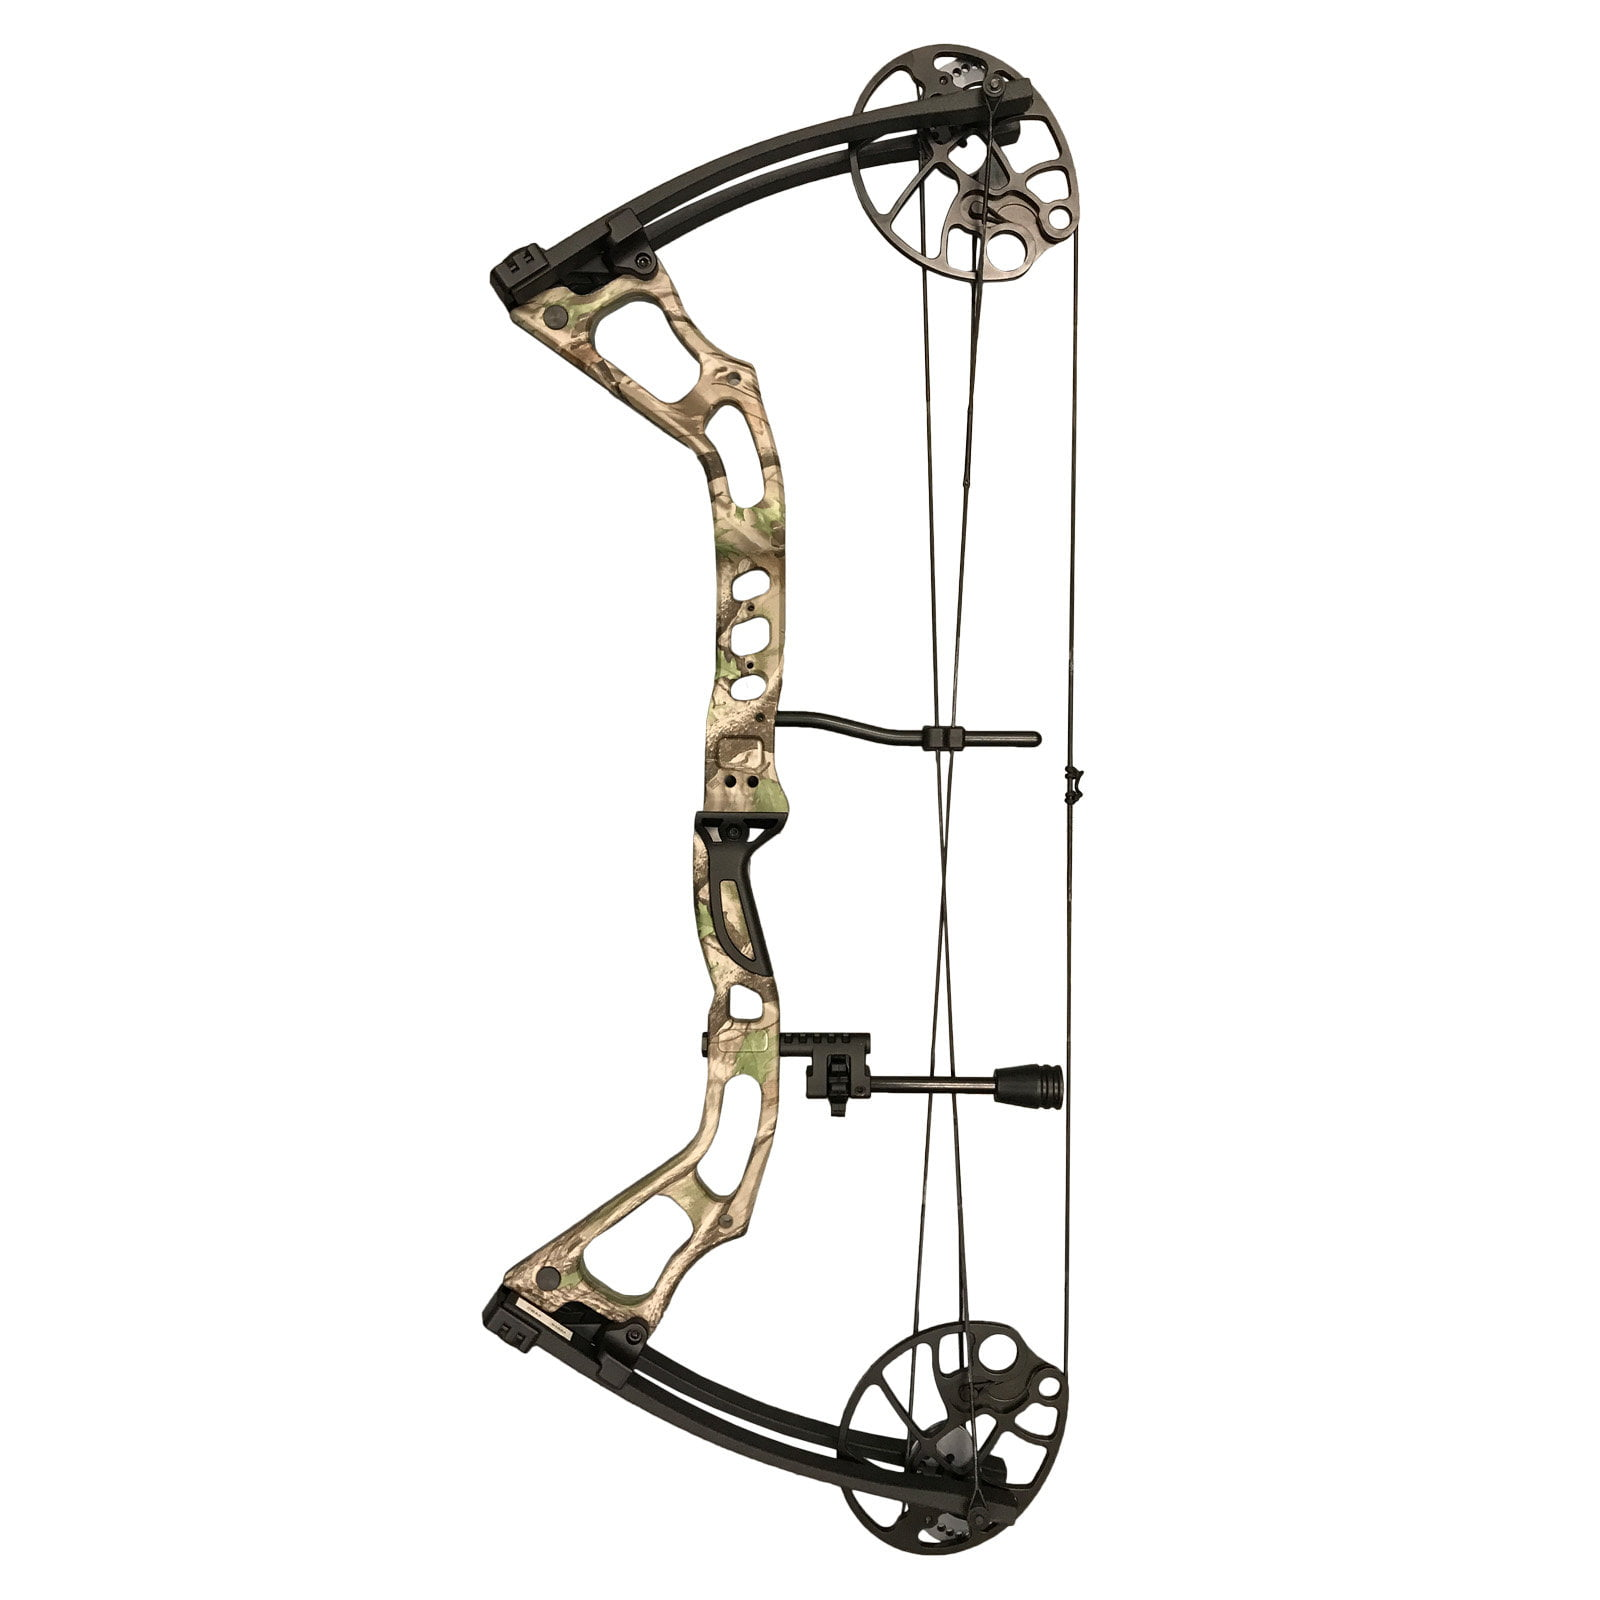 SAS Feud 25-70 Lbs 19-31'' Draw Length Compound Bow Hunting Target Field 300+FPS by SAS